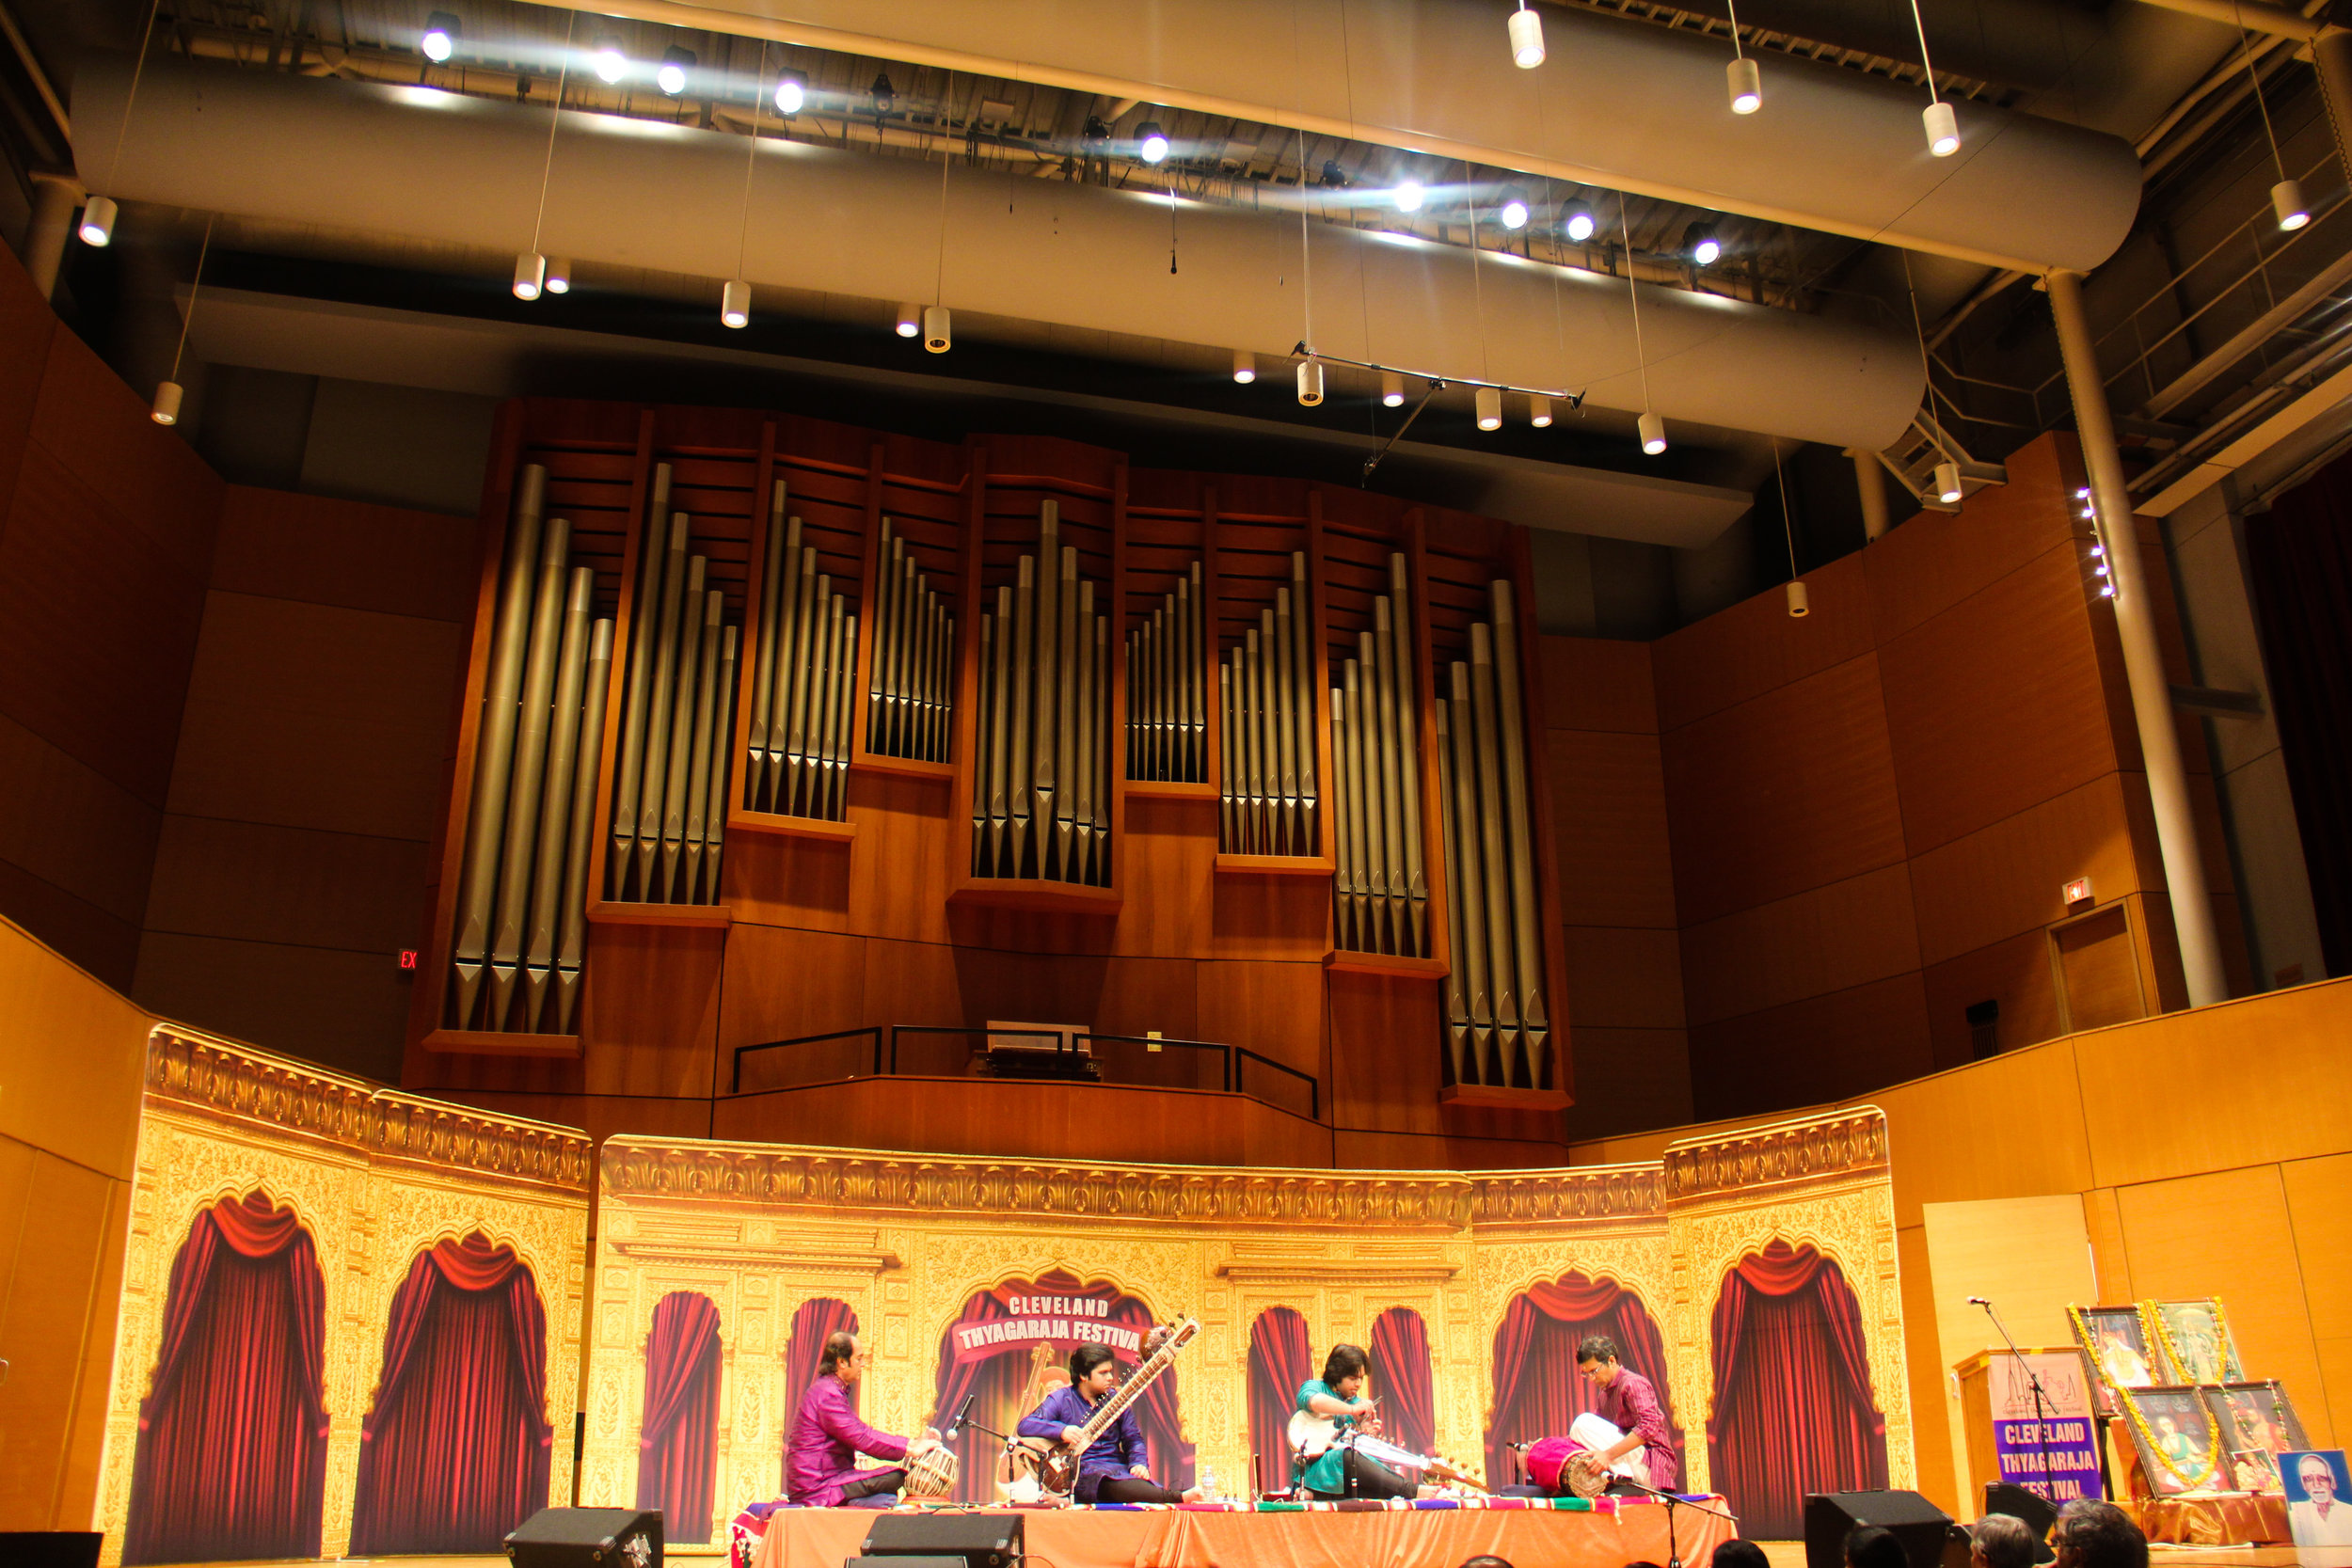 World's largest South Indian Music Festival at Waetjen Auditorium, Cleveland, USA in 2015